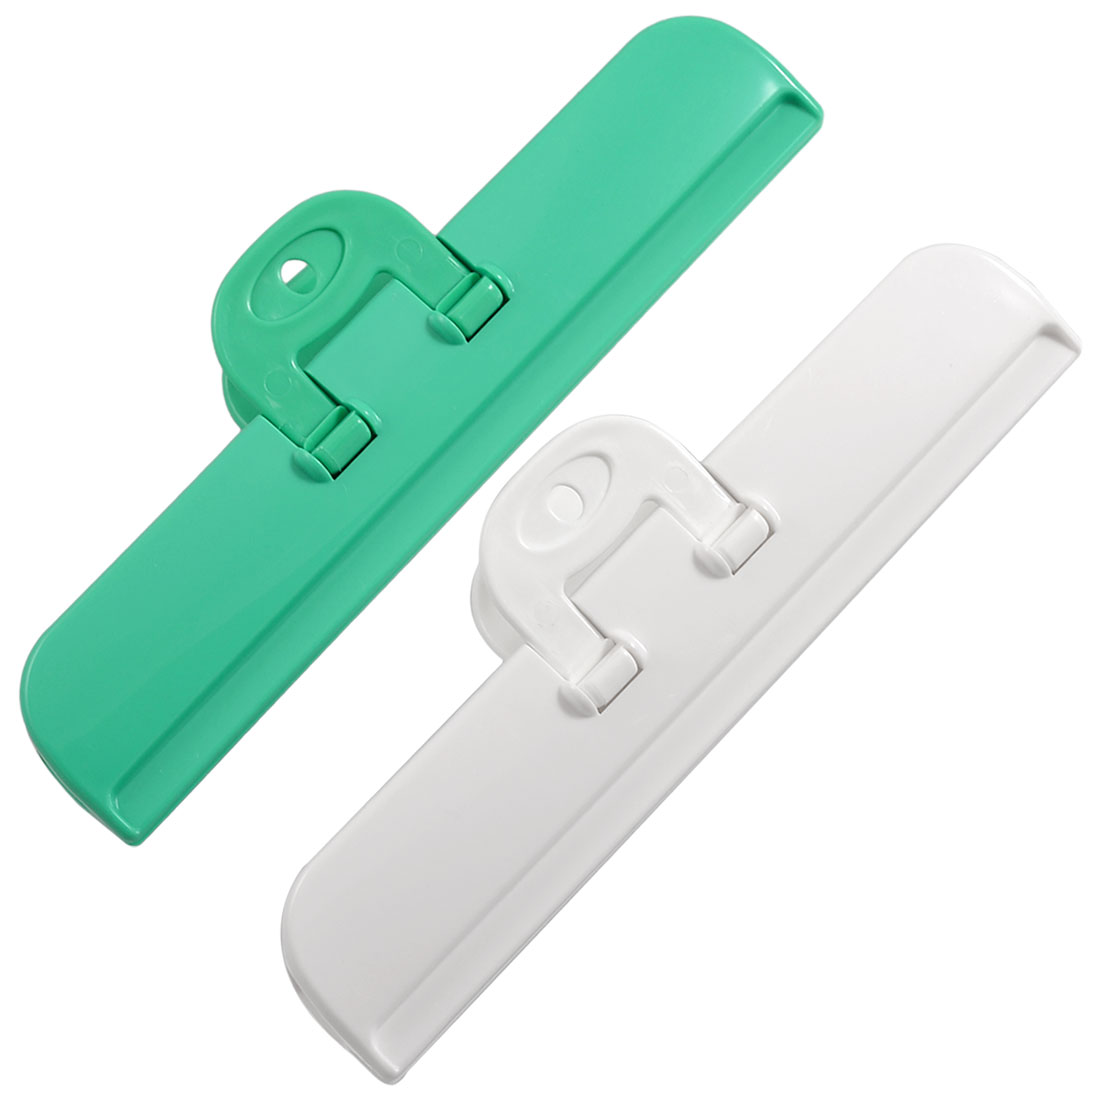 2 Pcs Food Storage Bag Sealing Clips Airtight Pocket Clamps Green White